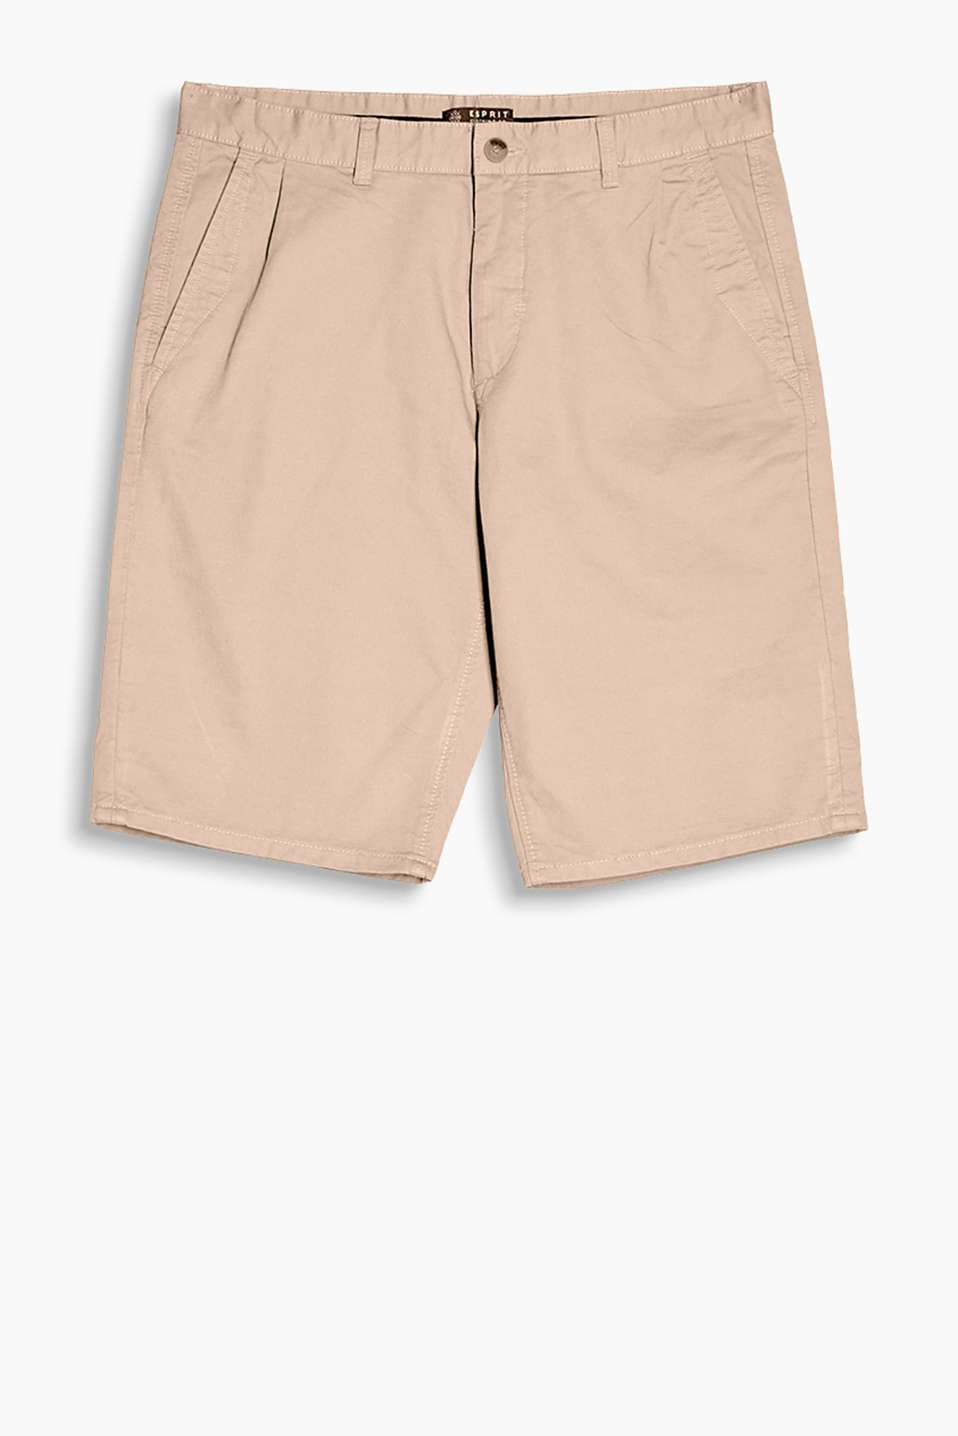 With a high-quality herringbone texture: chino-style shorts